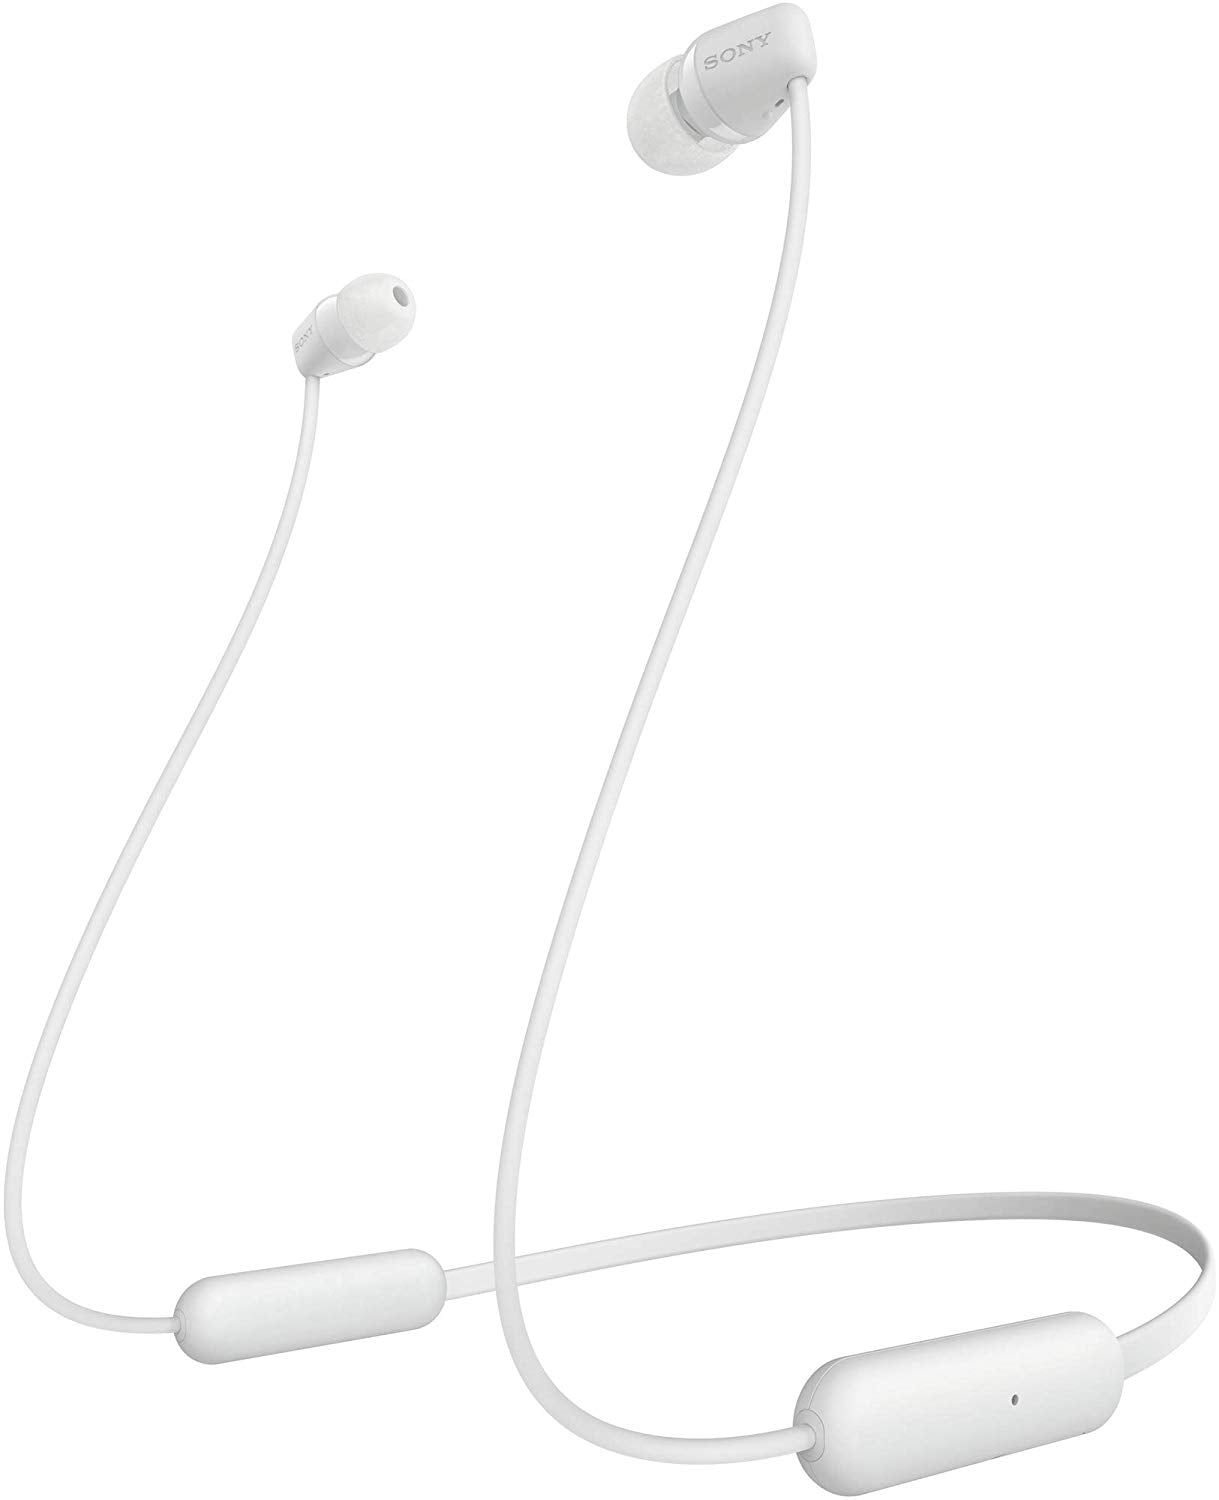 Sony WI-C200 Wireless Neck-Band Headphones with up to 15 Hours of Battery Life - White